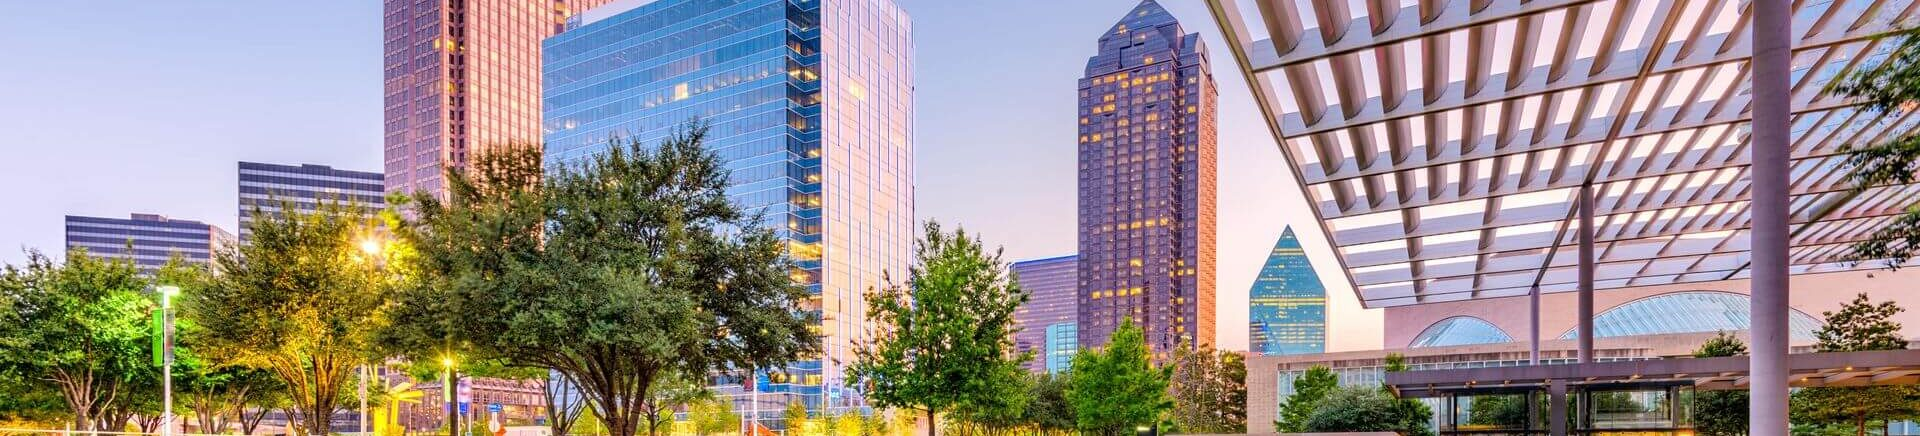 dallas texas corporate rentals and corporate apartments for long term or vacations